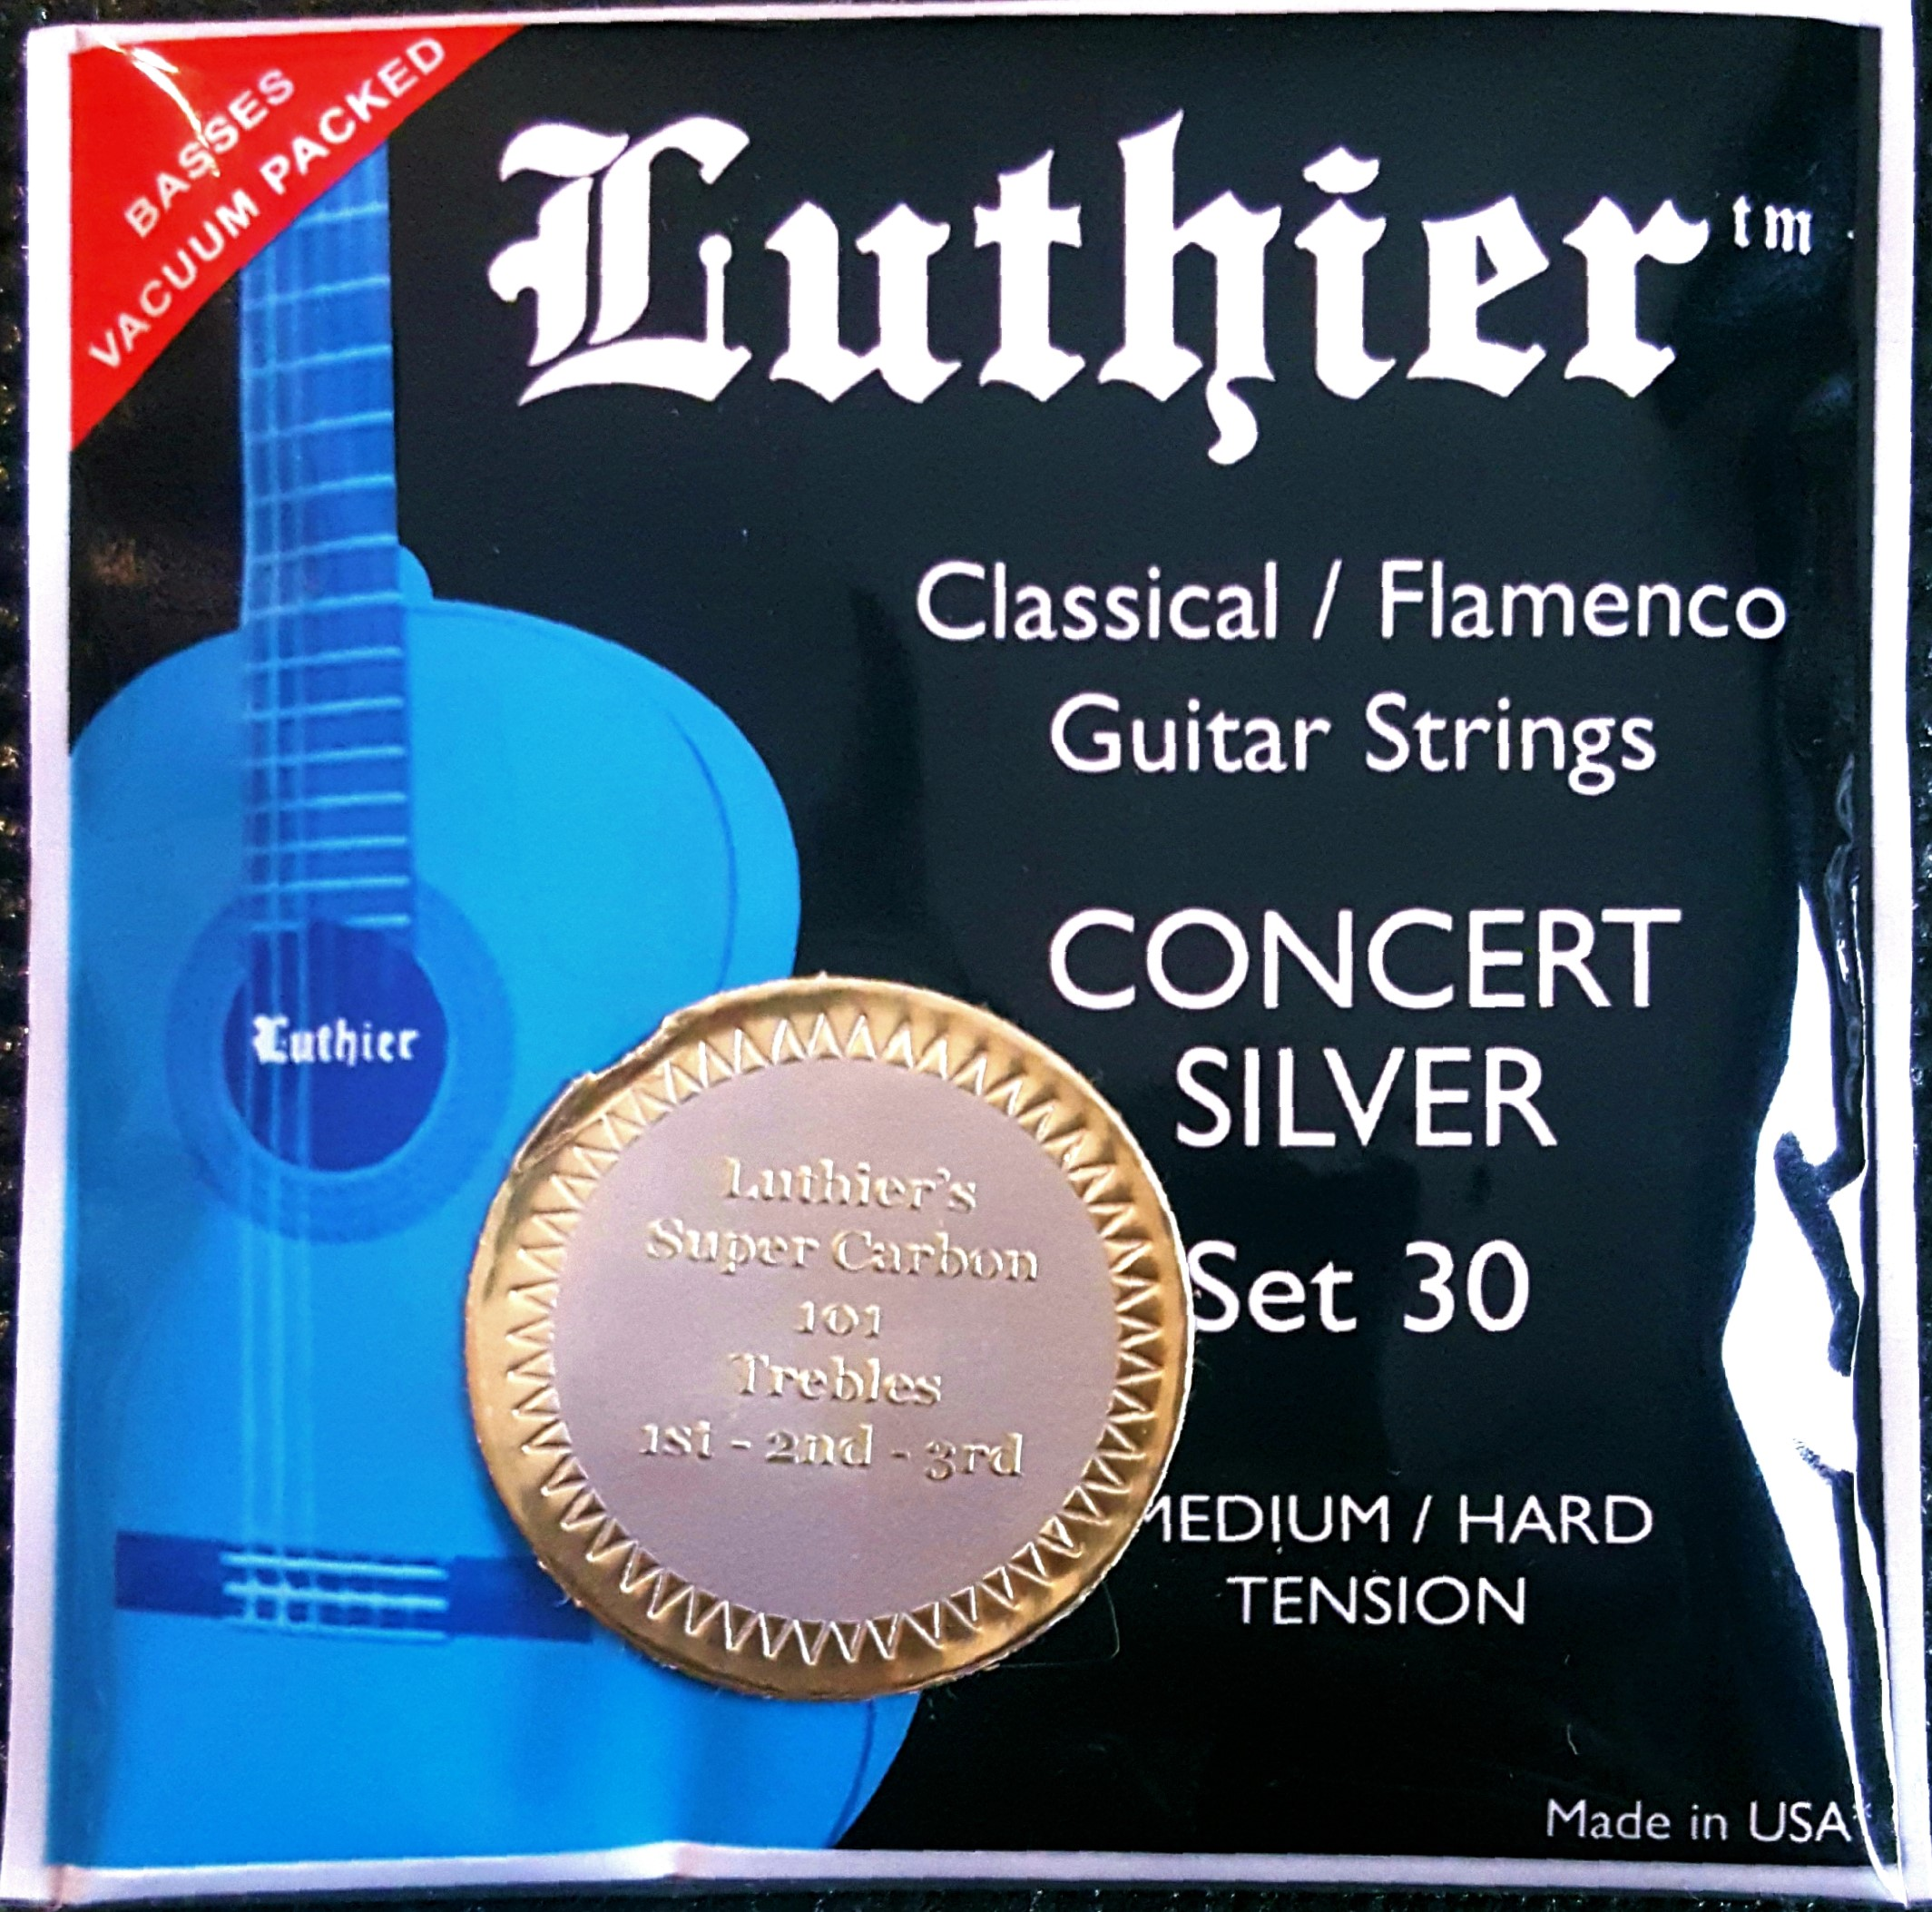 Luthier Classical/Flamenco Medium-Hard Tension Strings- Carbon Trebles